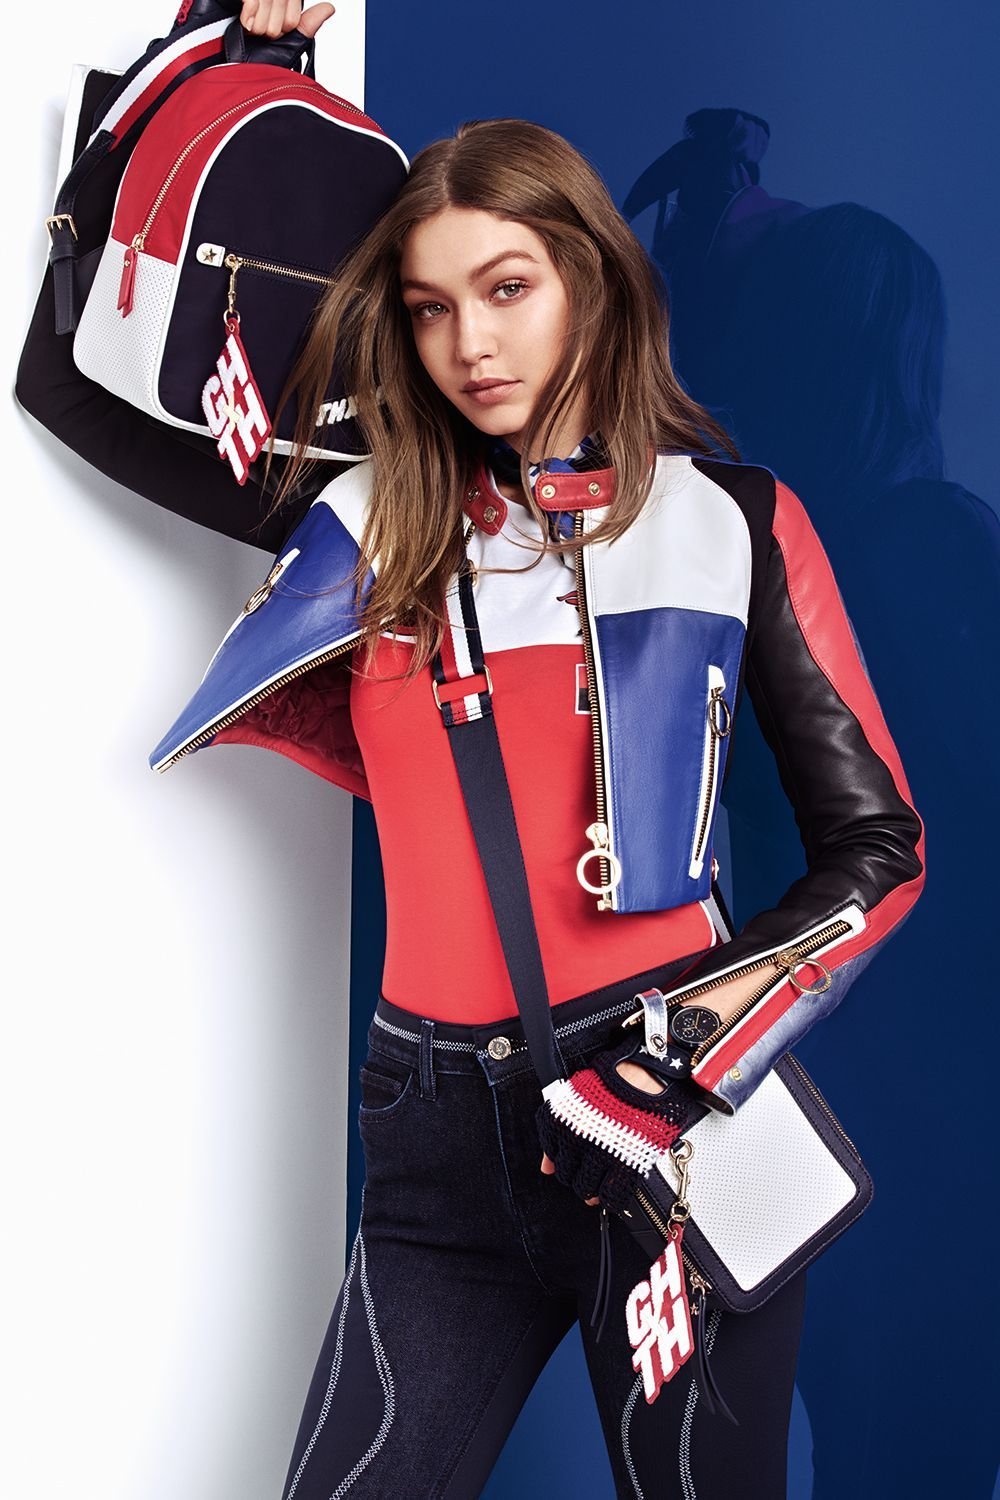 8612d4feaa03 Gigi Hadid and Tommy Hilfiger Unveil a New Racing-Inspired Collection -  HarpersBAZAAR.com